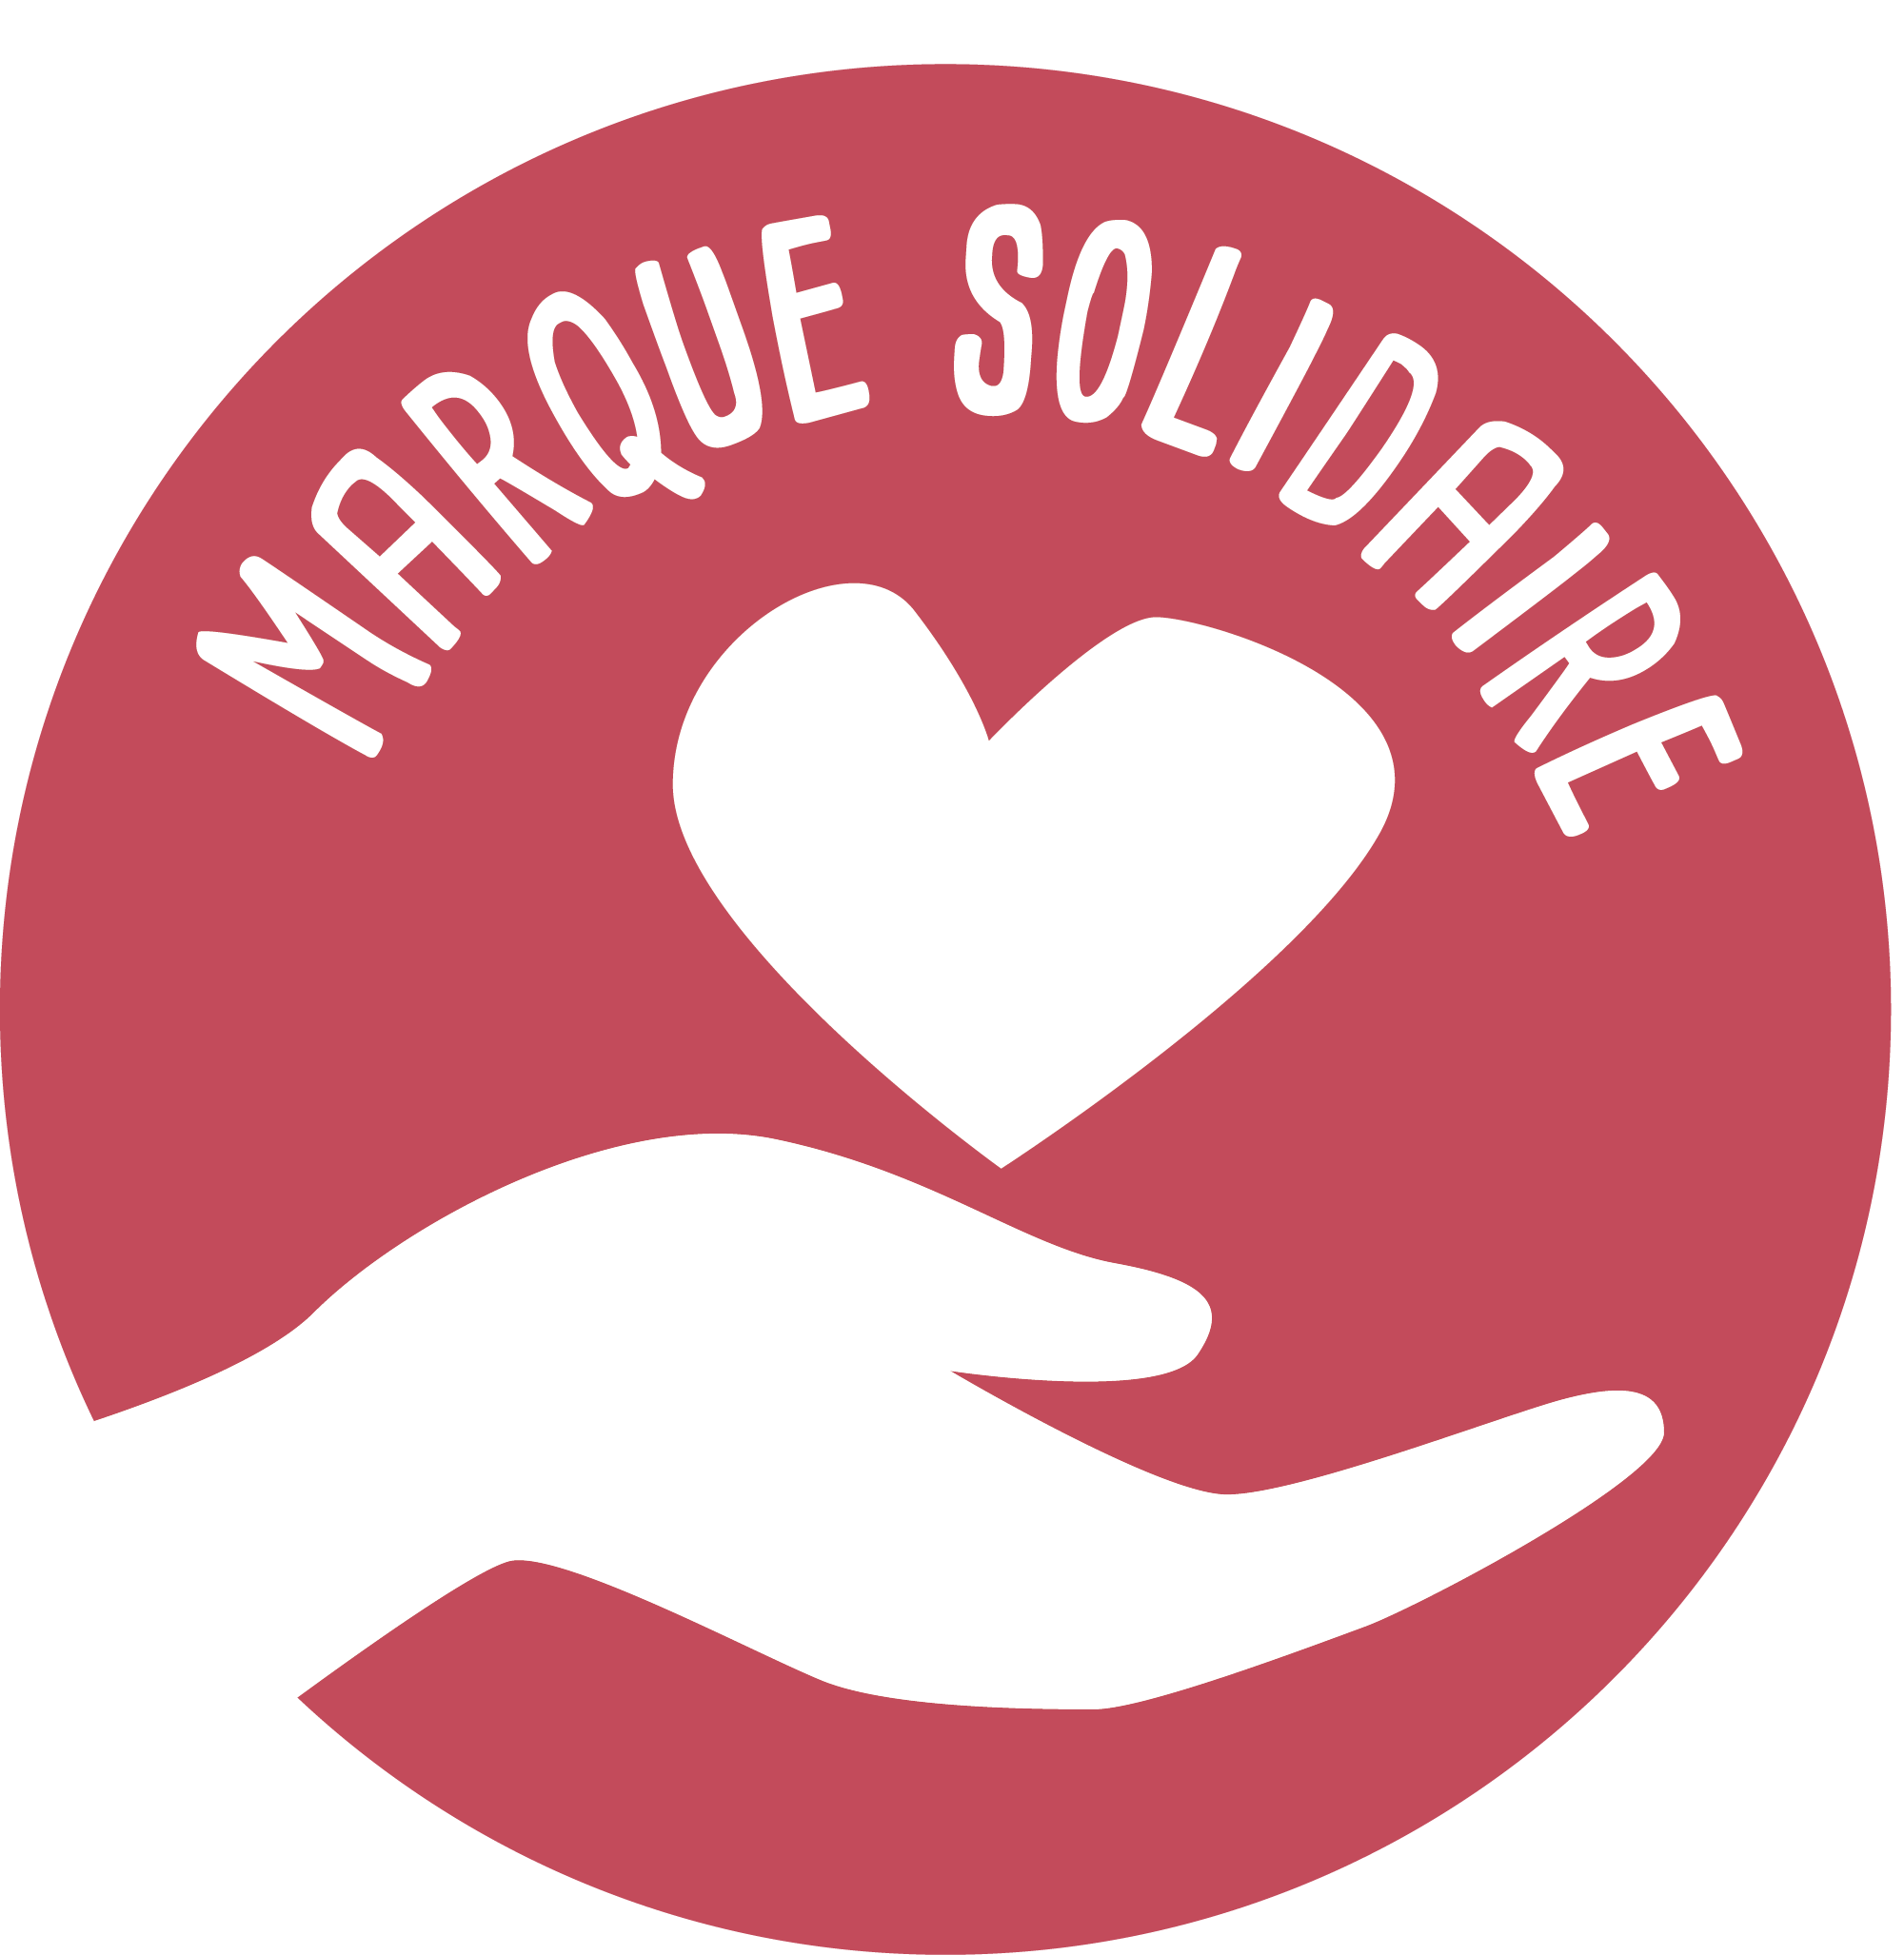 atelier imaginaire marque solidaire made in france